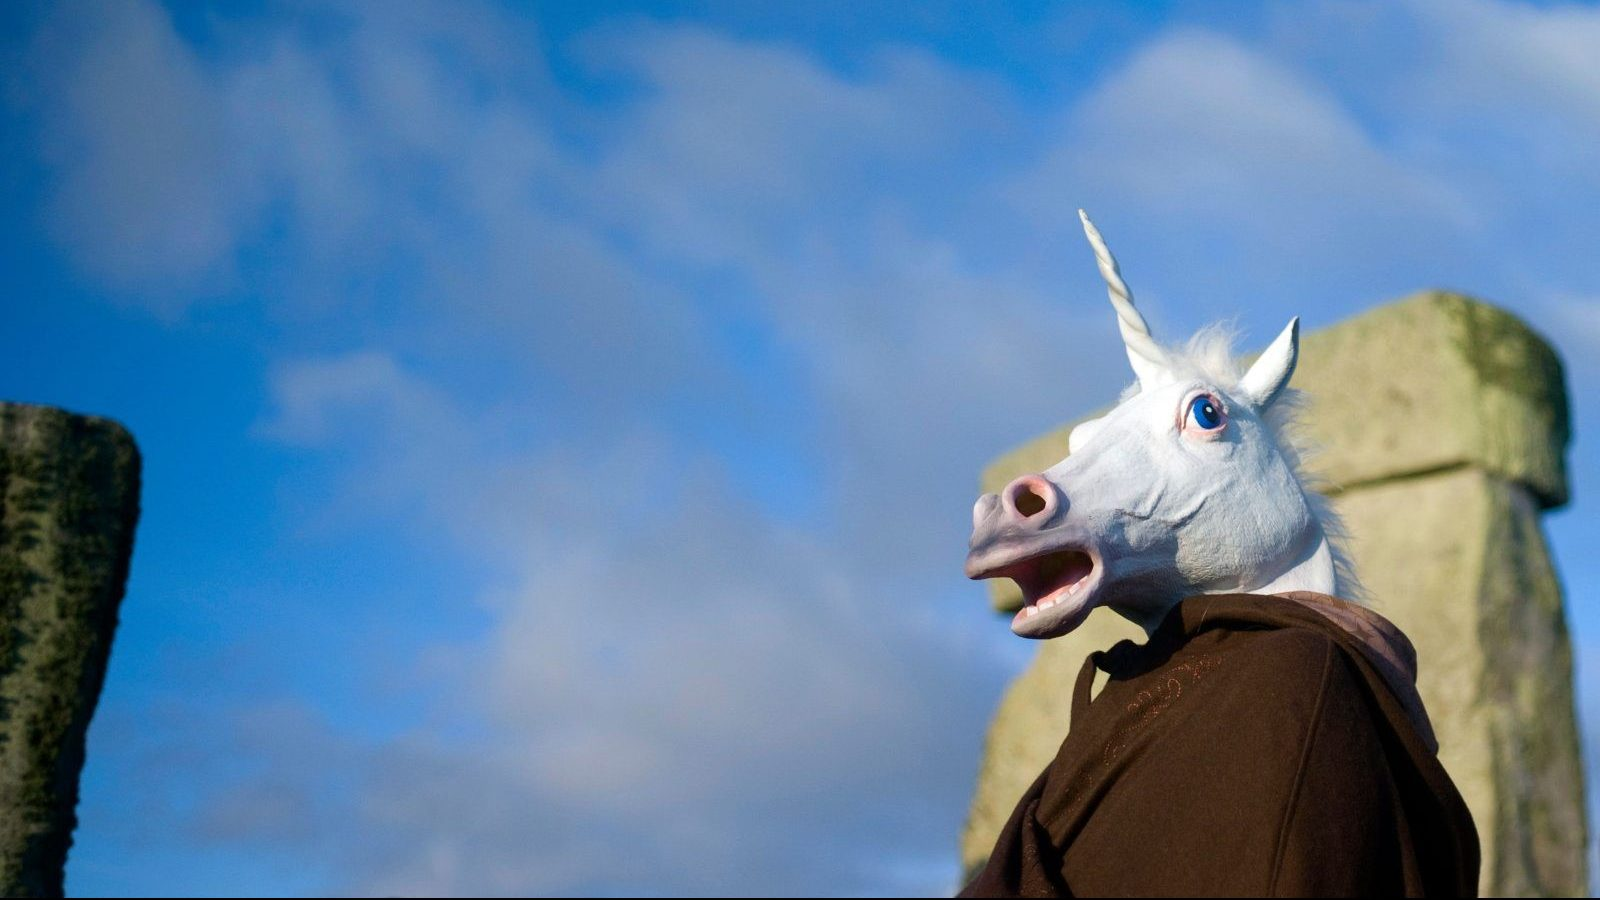 A reveller dressed as a unicorn celebrates the sunrise during the winter solstice at Stonehenge on Salisbury plain in southern England December 21, 2012. The winter solstice is the shortest day of the year, and the longest night of the year. REUTERS/Kieran Doherty  (BRITAIN - Tags: SOCIETY ENVIRONMENT TRAVEL) - GM1E8CL1Q1601